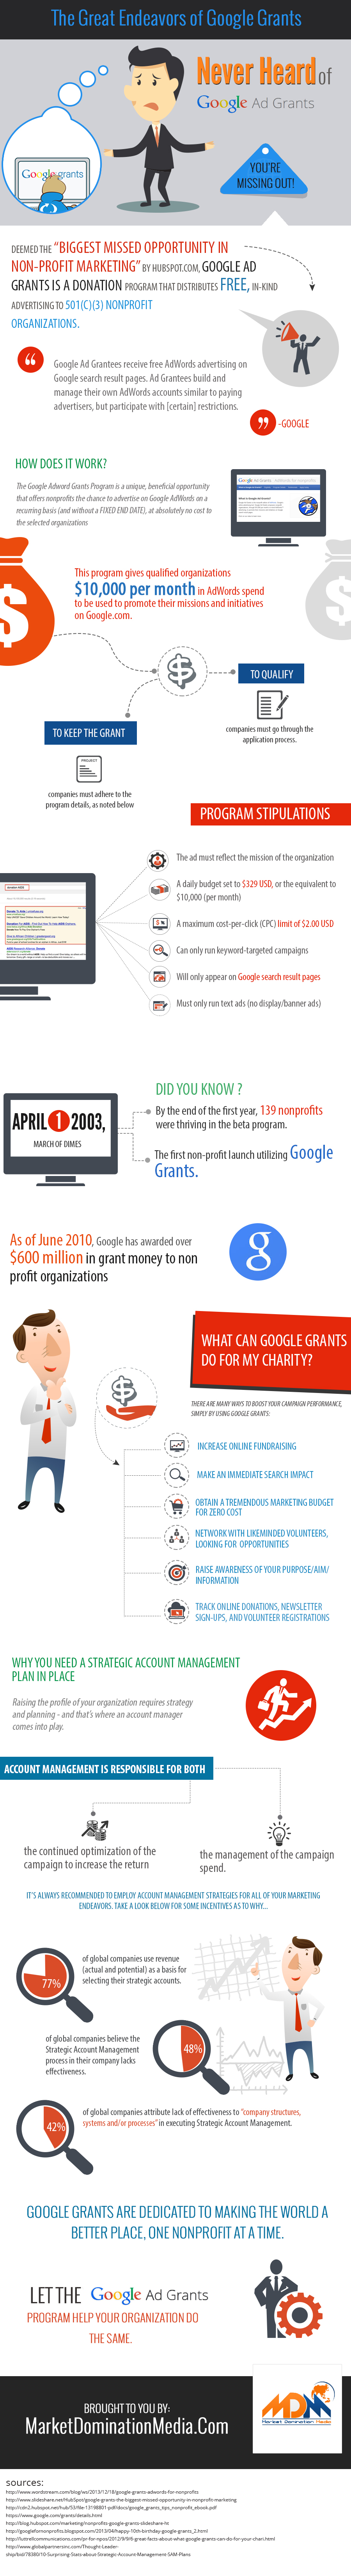 Google Ad Grants nonprofit marketing